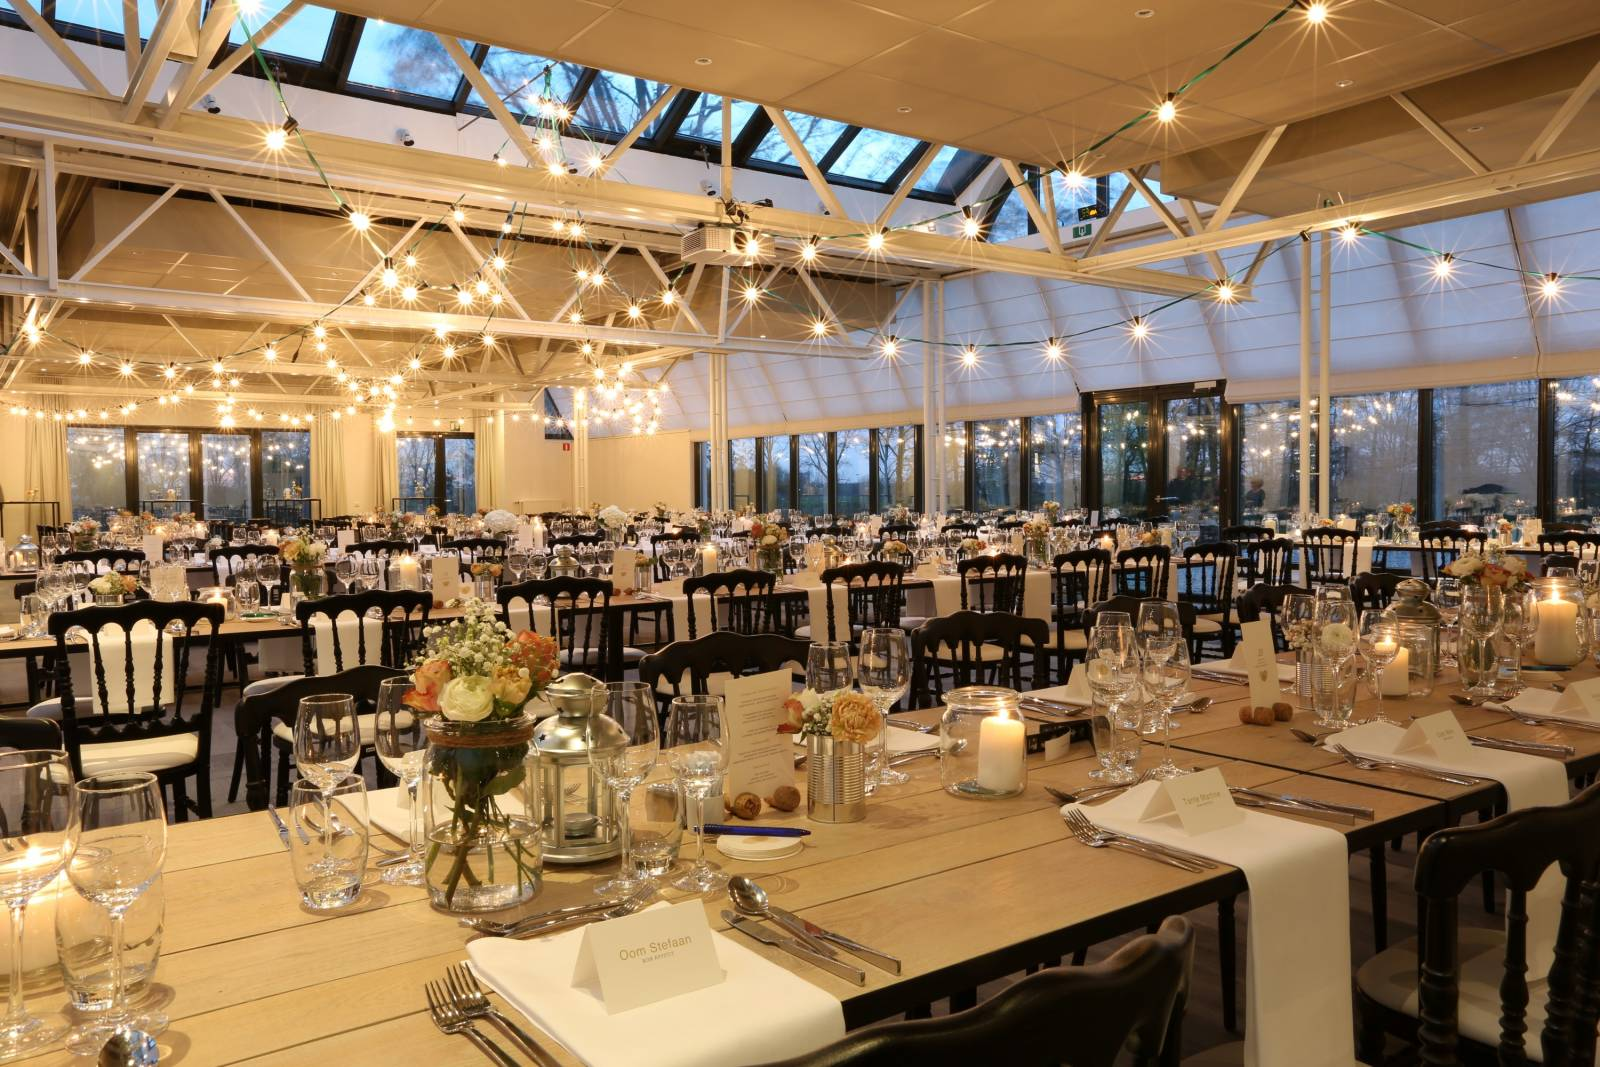 House of Weddings Kasteel Te Lake Feestzaal Oost-Vlaanderen Catering Ceremonie Zulte Gent (28)